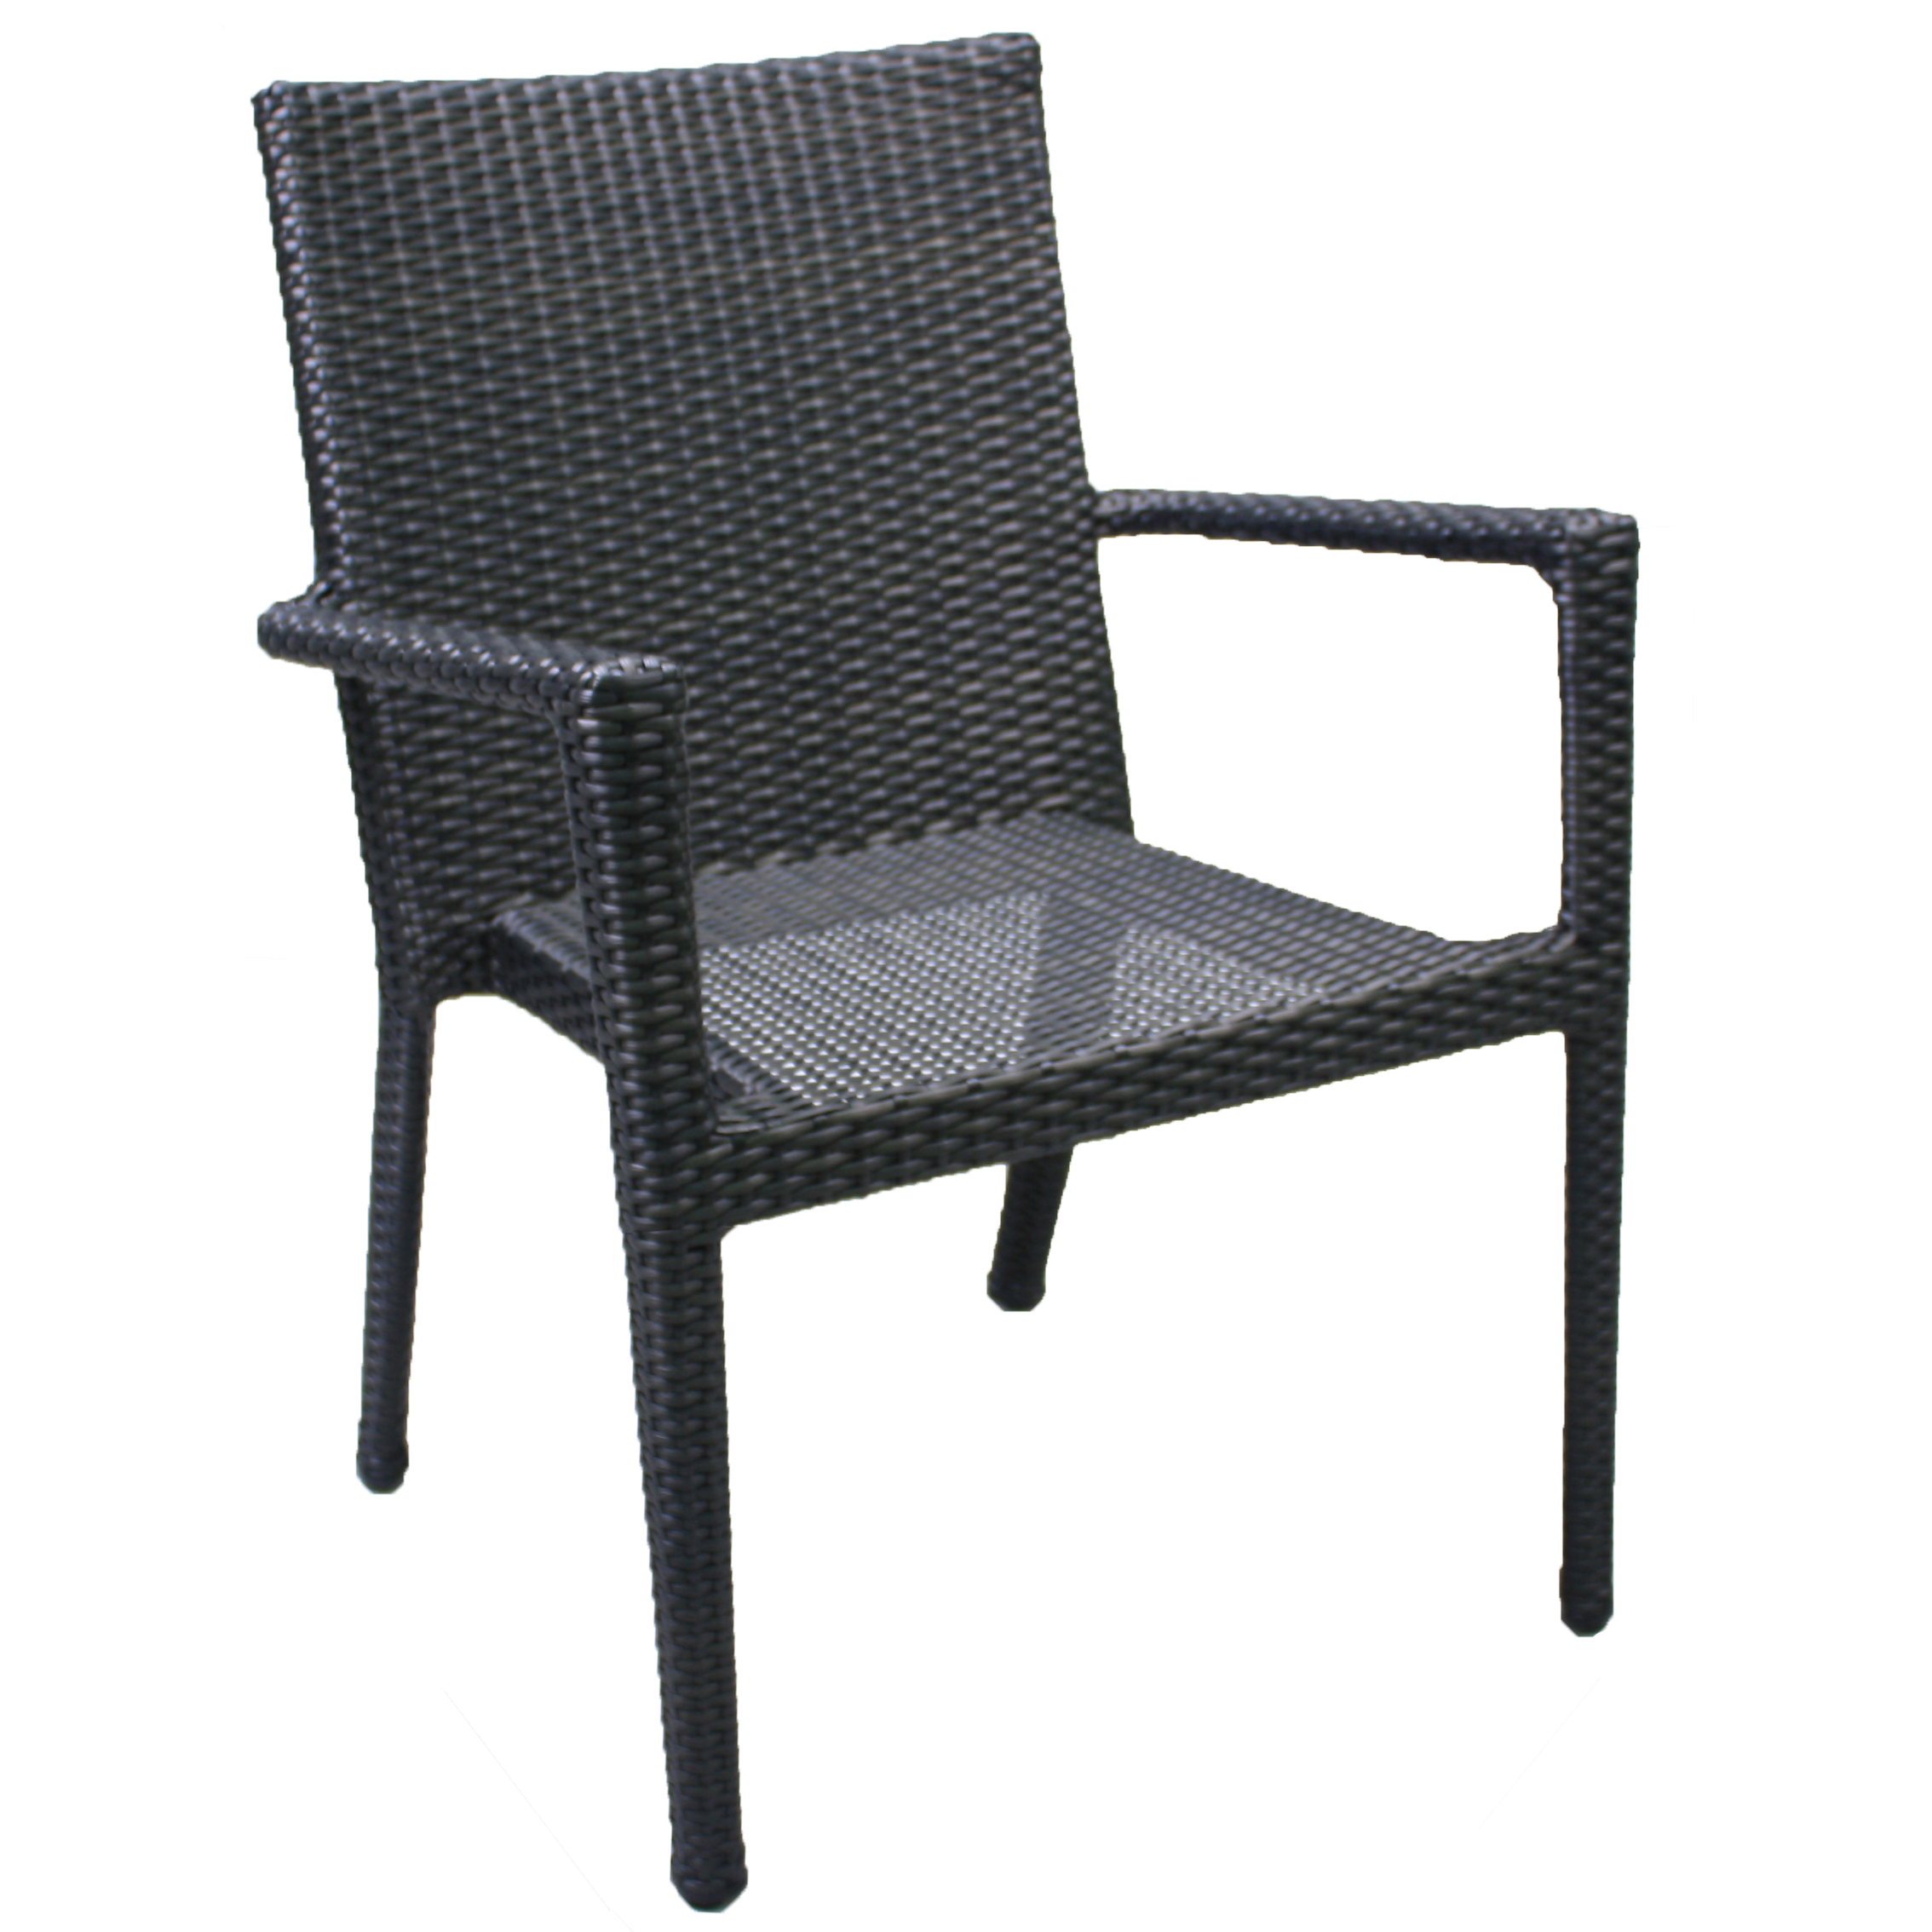 "891021 Del Mar Stackable Dining Chair   24.4"" x 25.6"" x 34.3"""